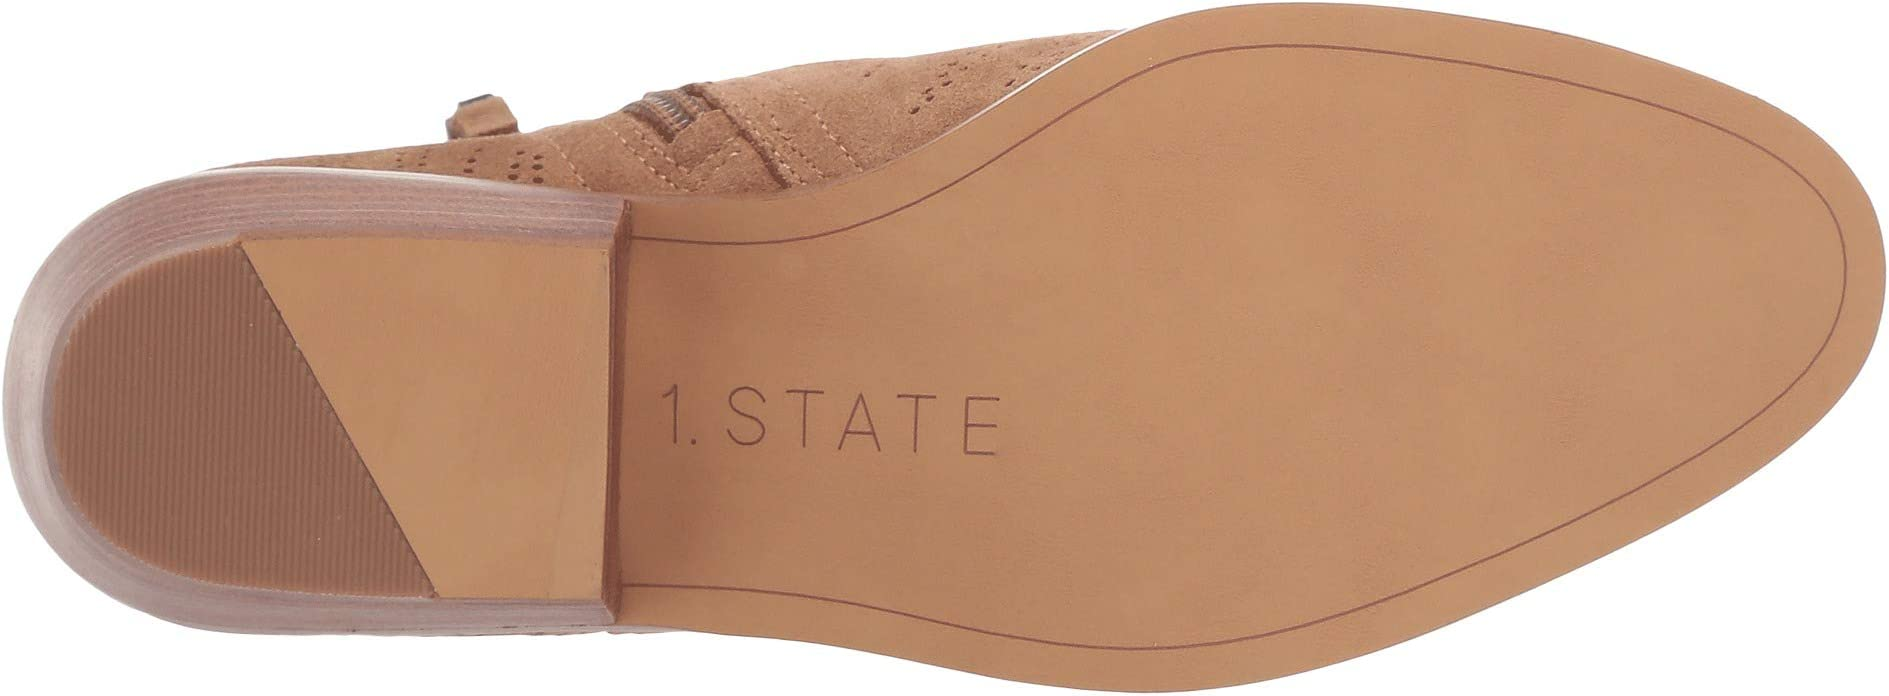 1.STATE Renna | Women's shoes | 2020 Newest